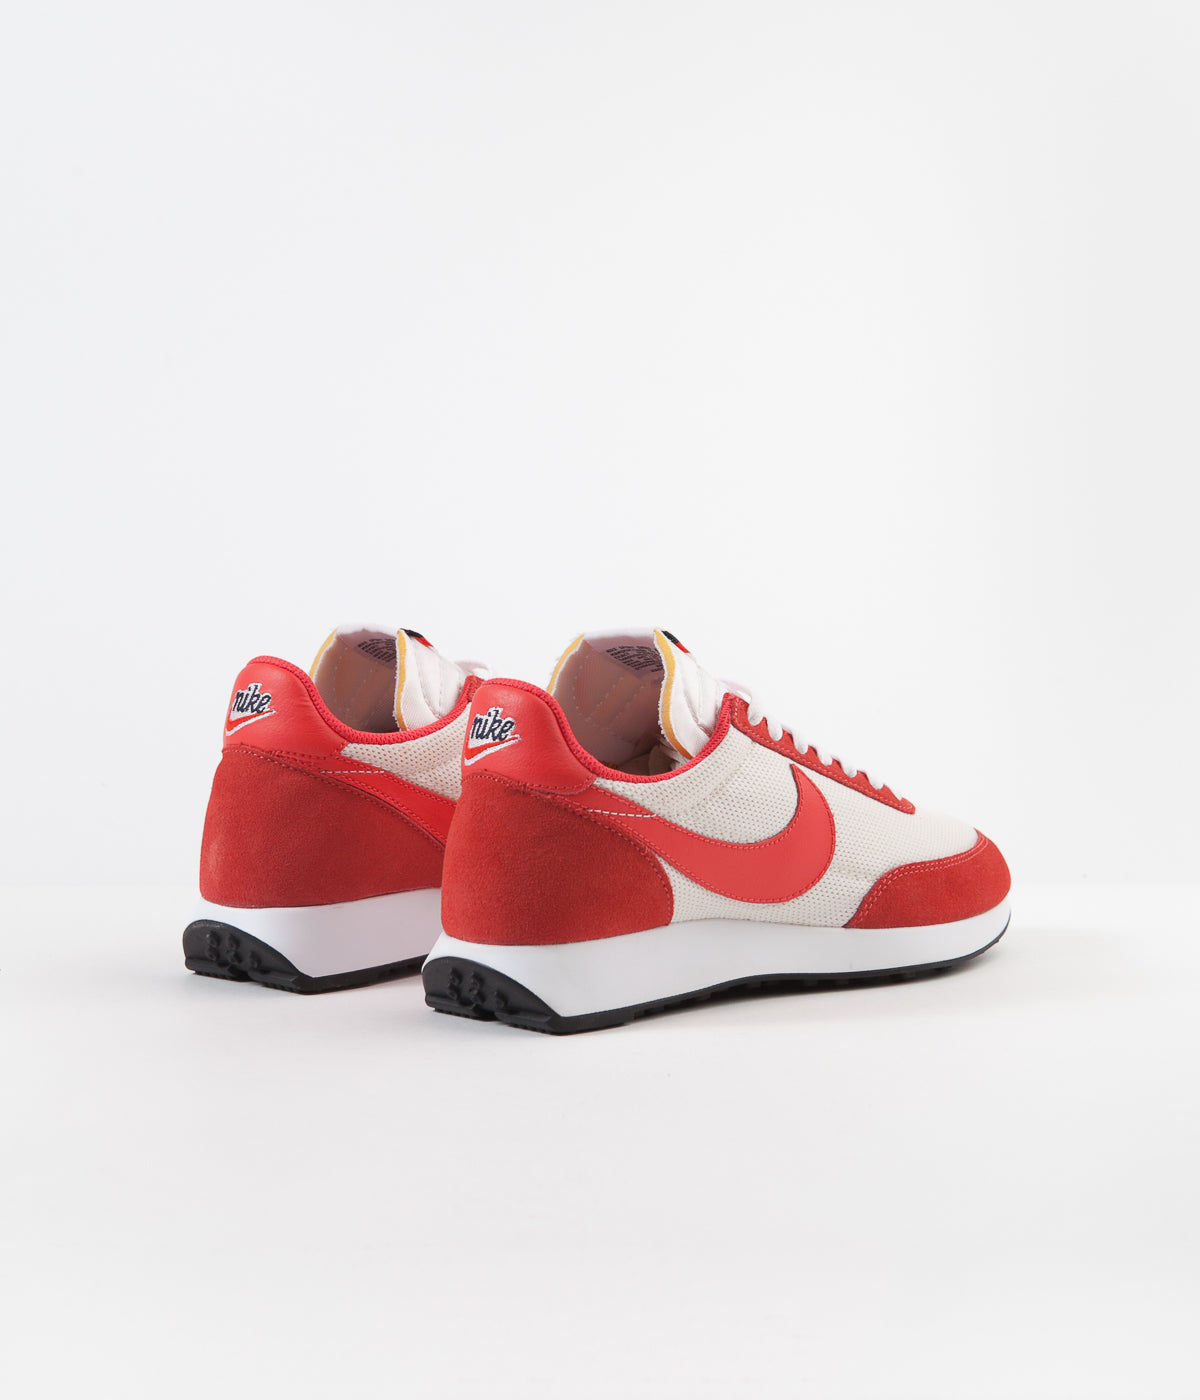 argumento Previamente Locomotora  Nike Air Tailwind 79 Shoes - Sail / Track Red - White - Habanero Red |  Always in Colour